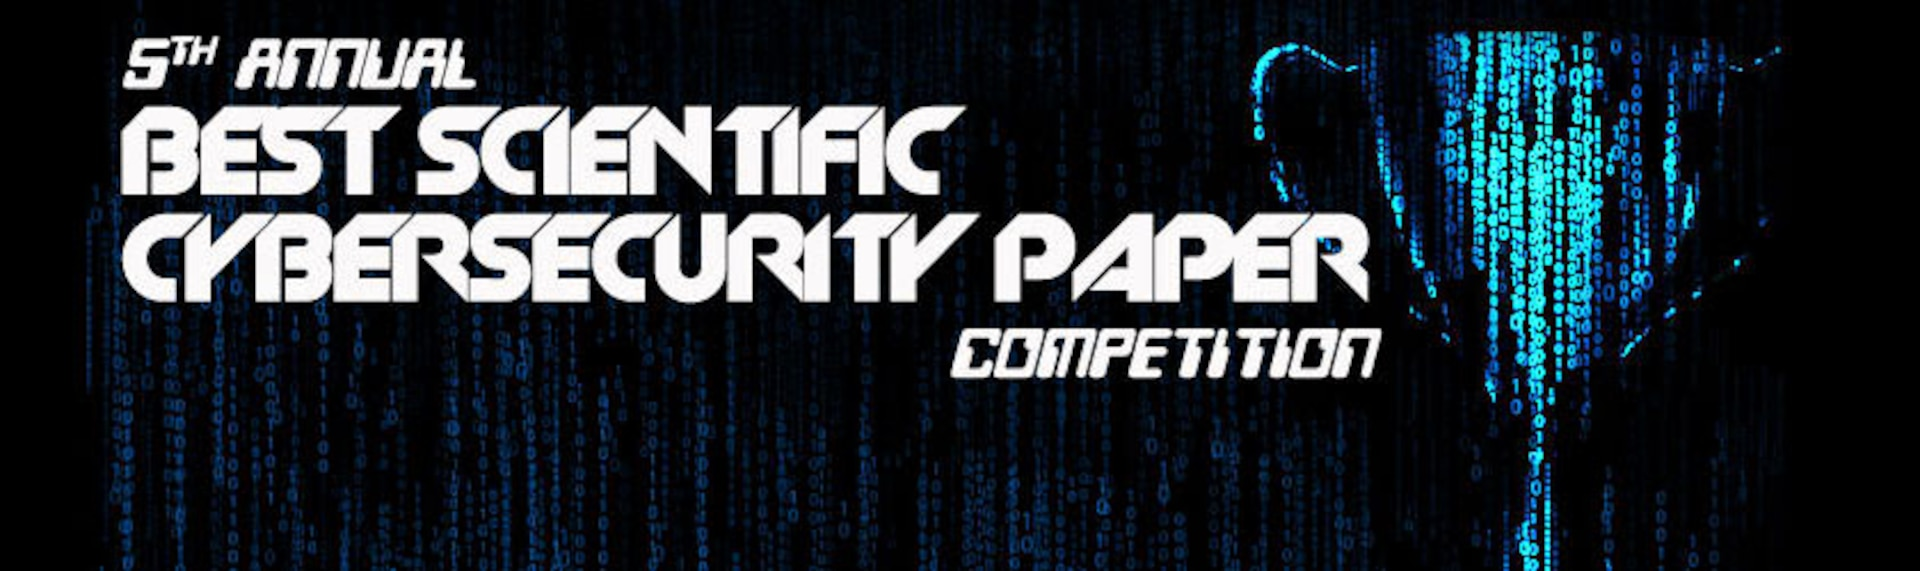 NSA's 5th Annual Best Scientific Cybersecurity Paper Competition